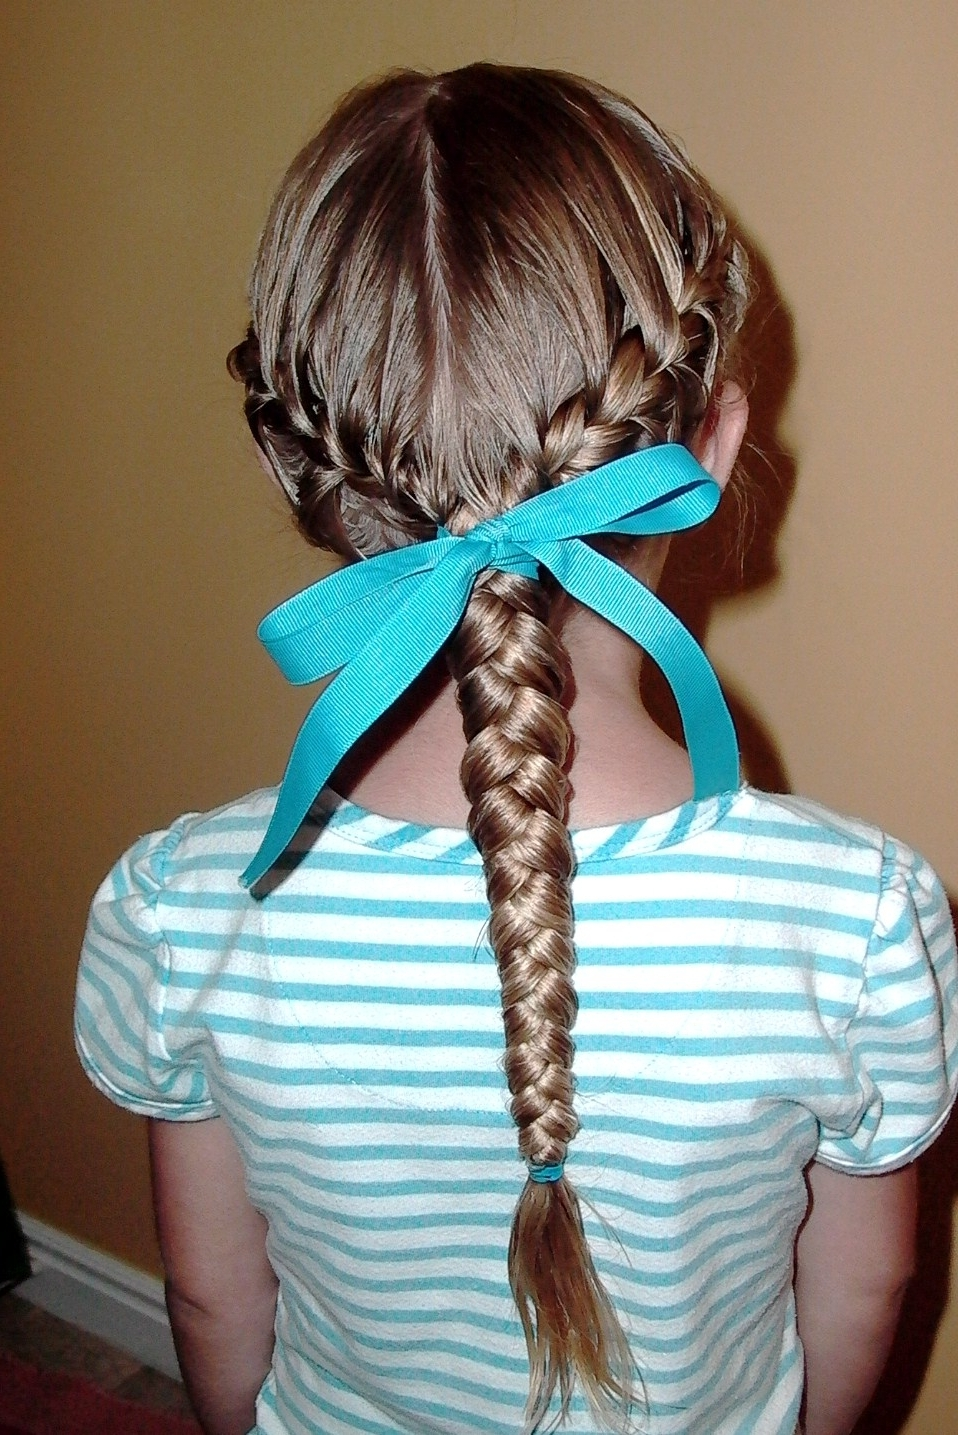 How To Do Girl's Hairstyles: Low Side French Braids Into Braided Inside Well Known Low Side French Braid Hairstyles (View 12 of 15)